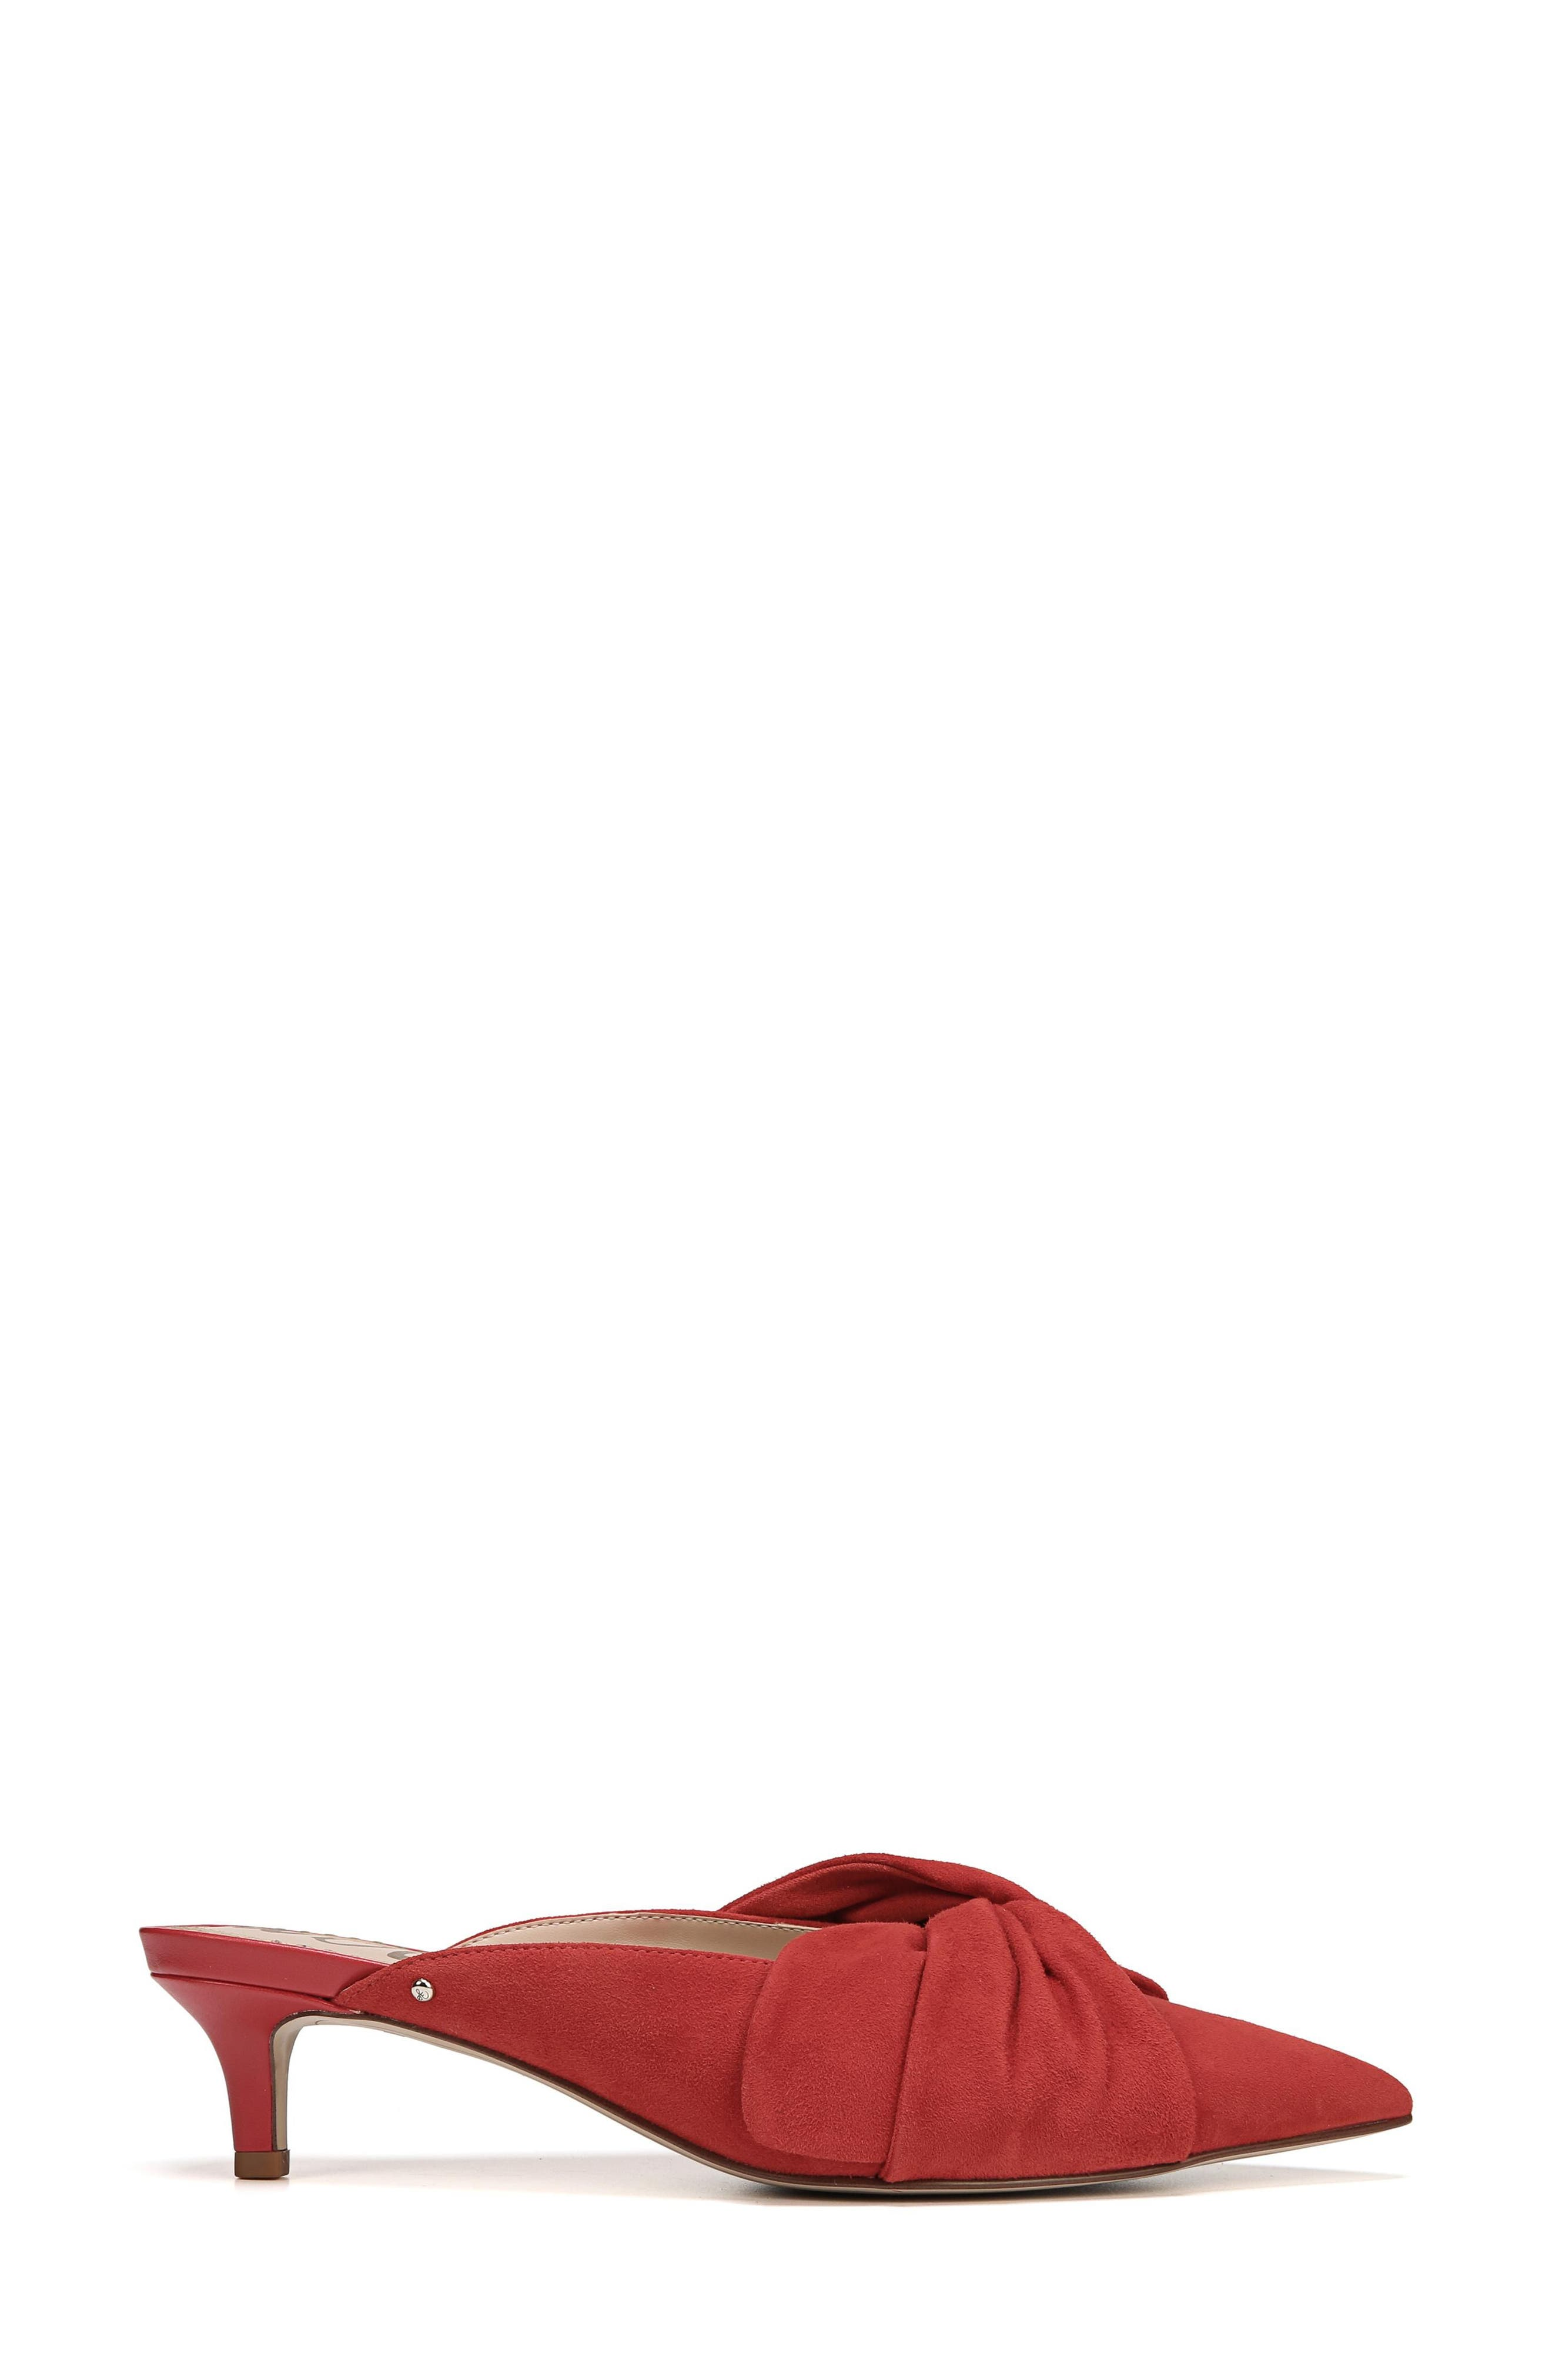 Laney Pointy Toe Mule,                             Alternate thumbnail 3, color,                             Candy Red Suede